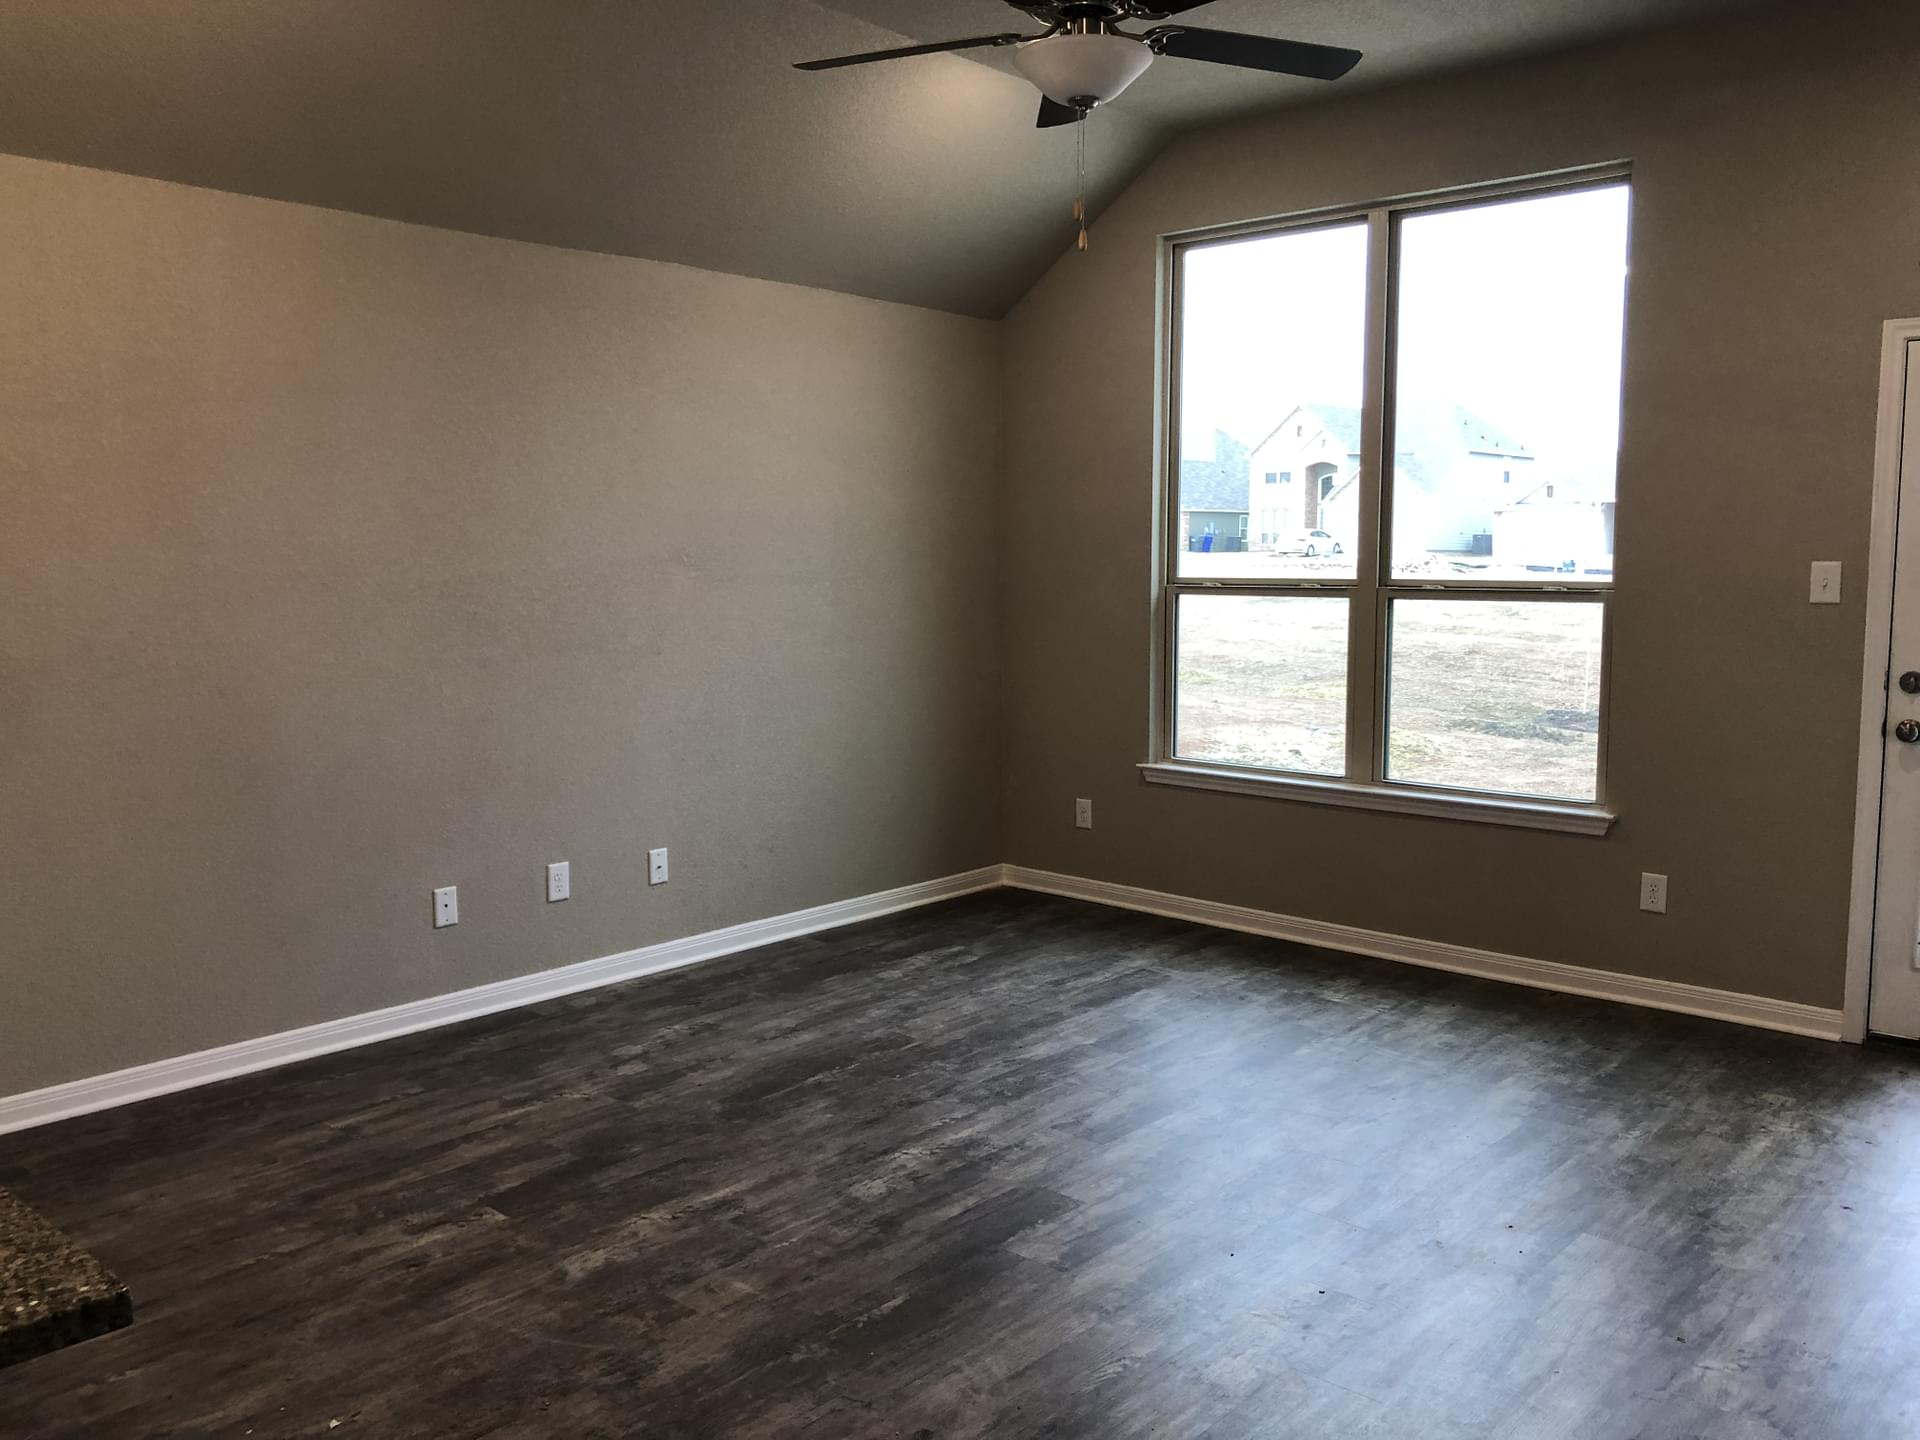 3br New Home in Waco, TX